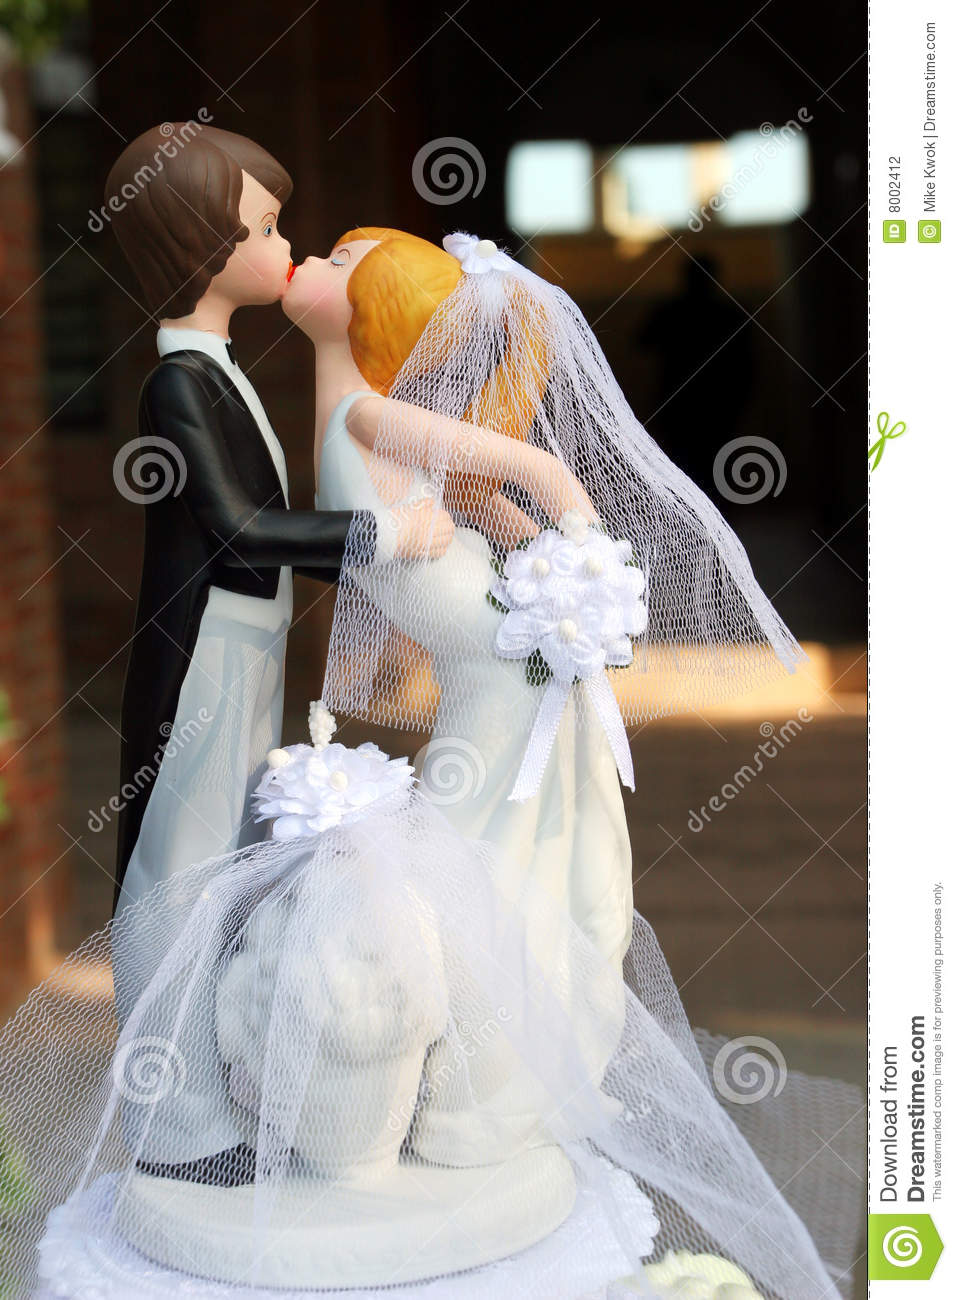 Wedding Cake Dolls Stock Photo Image Of Marriage Dolls